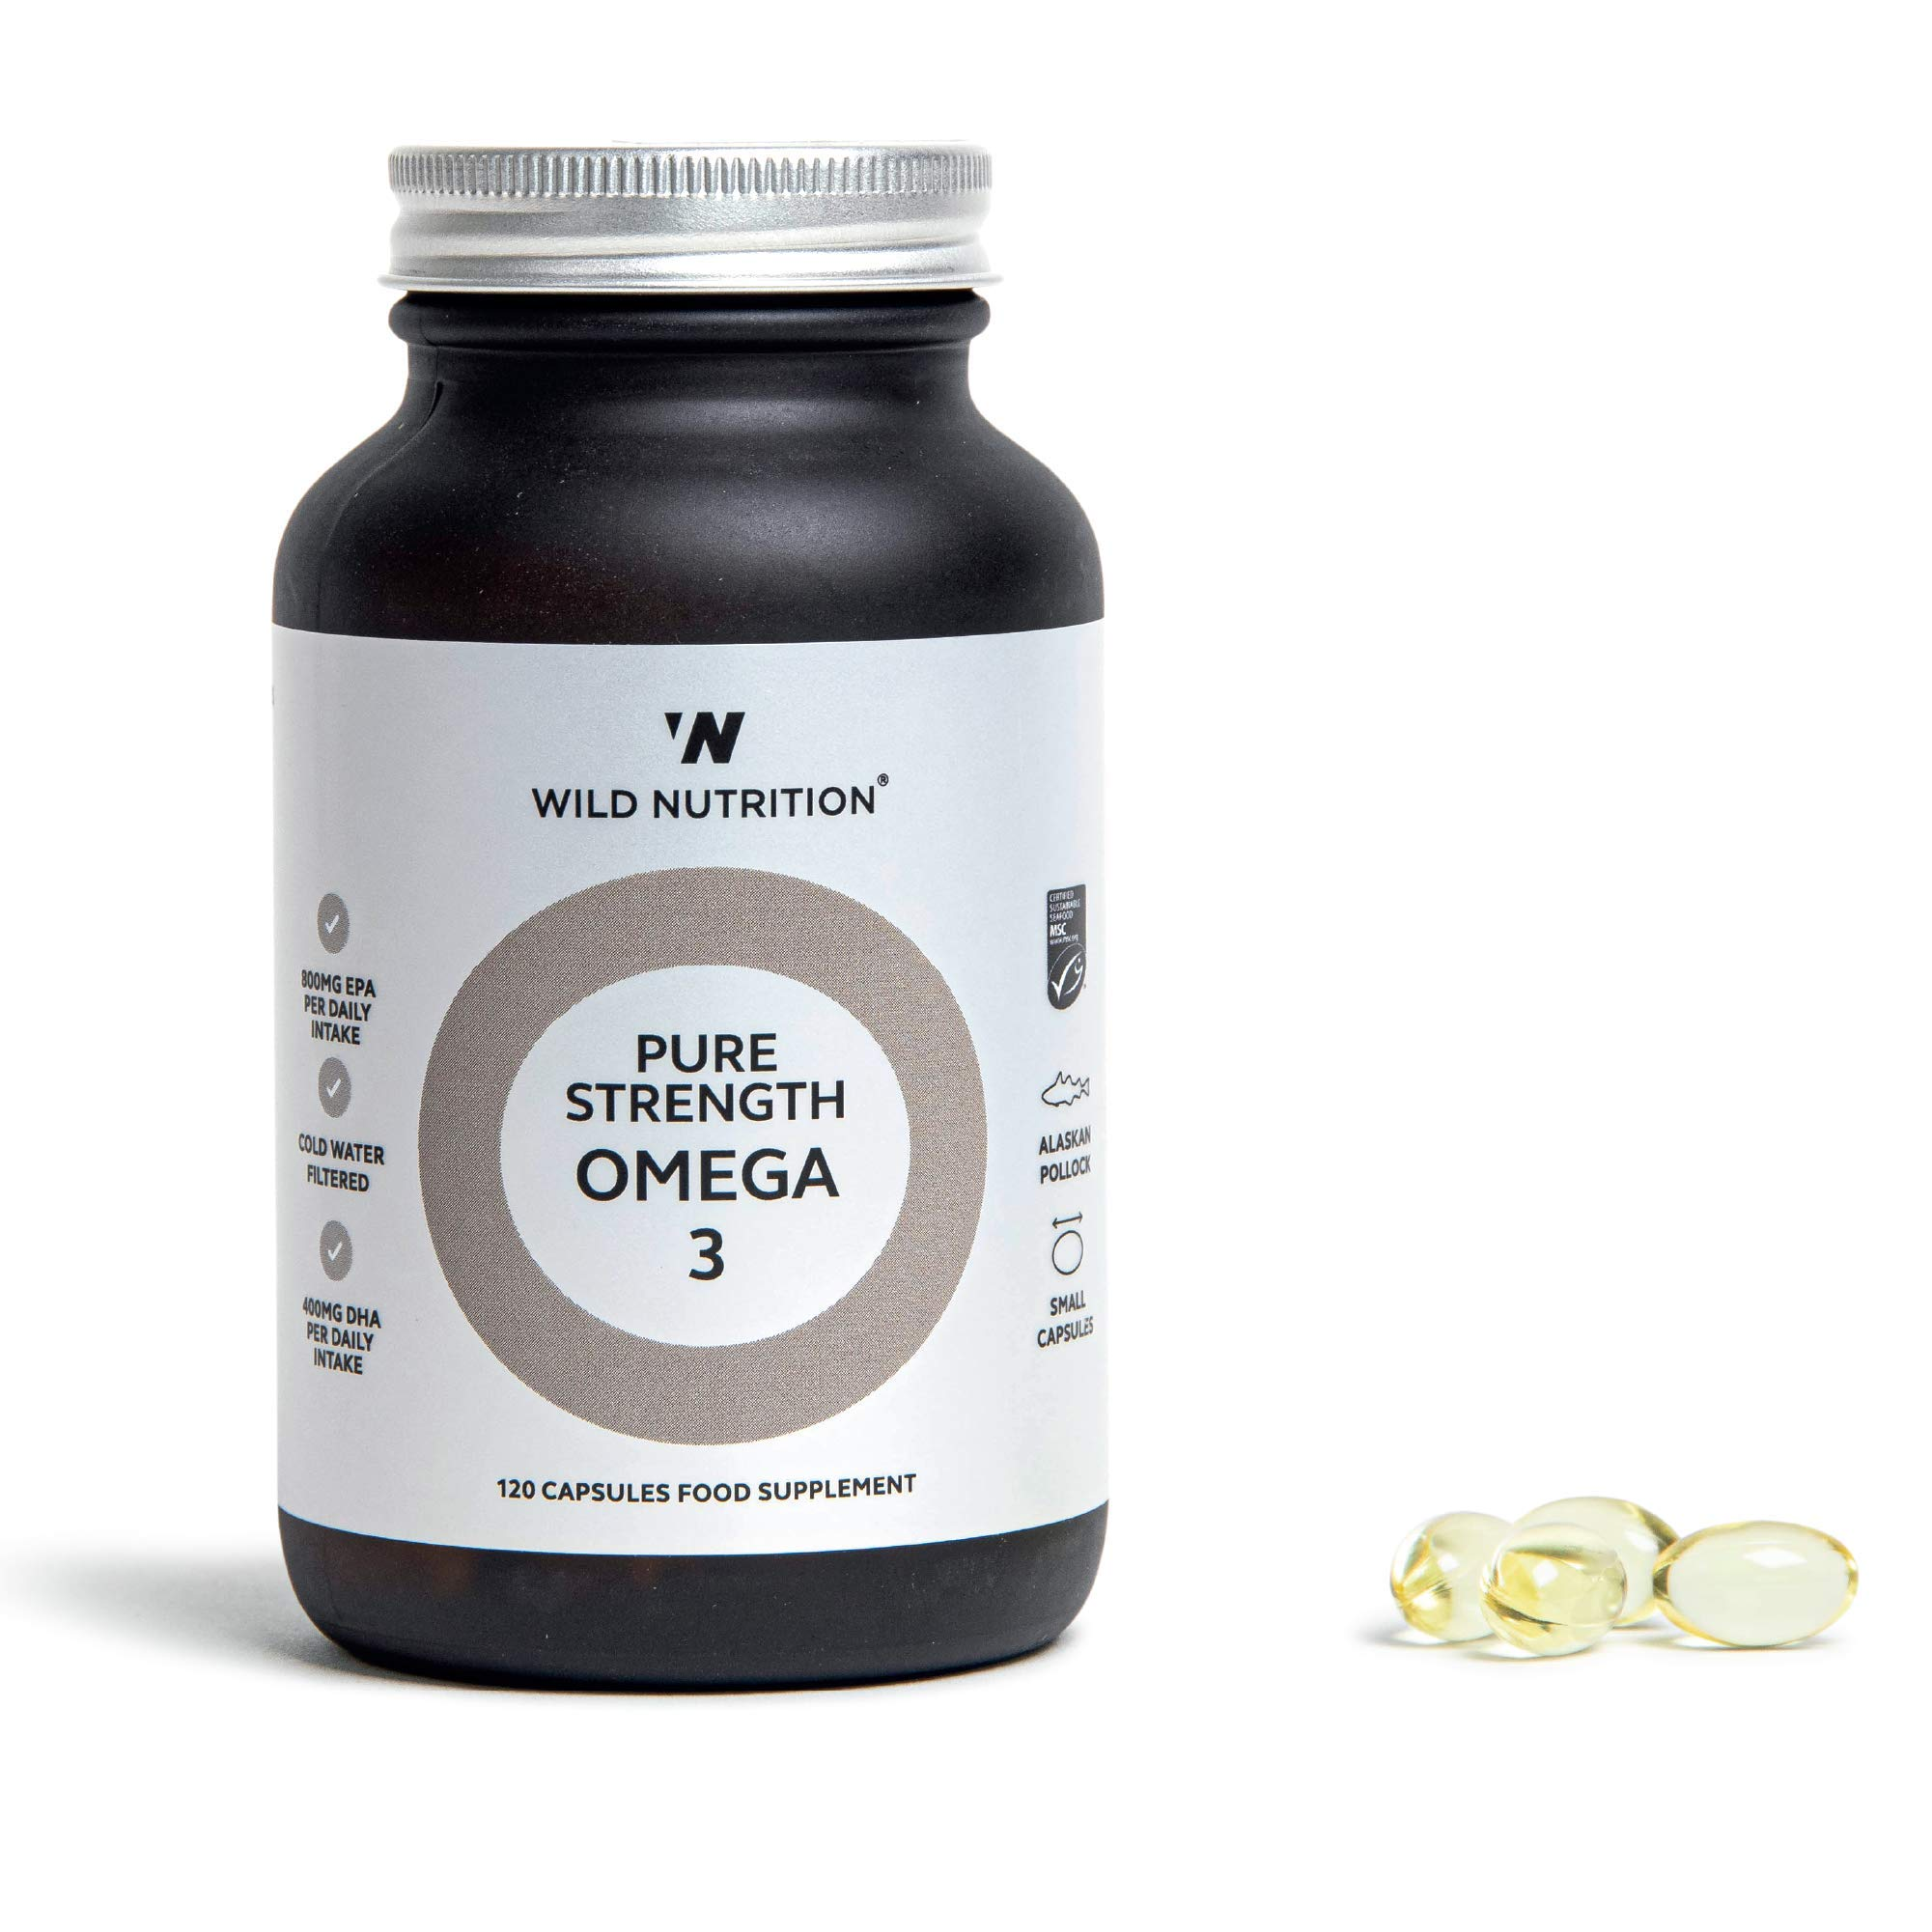 Wild Nutrition – Pure Strength Omega 3 – Natural Cold Extracted Fish Oil – 120 Capsules